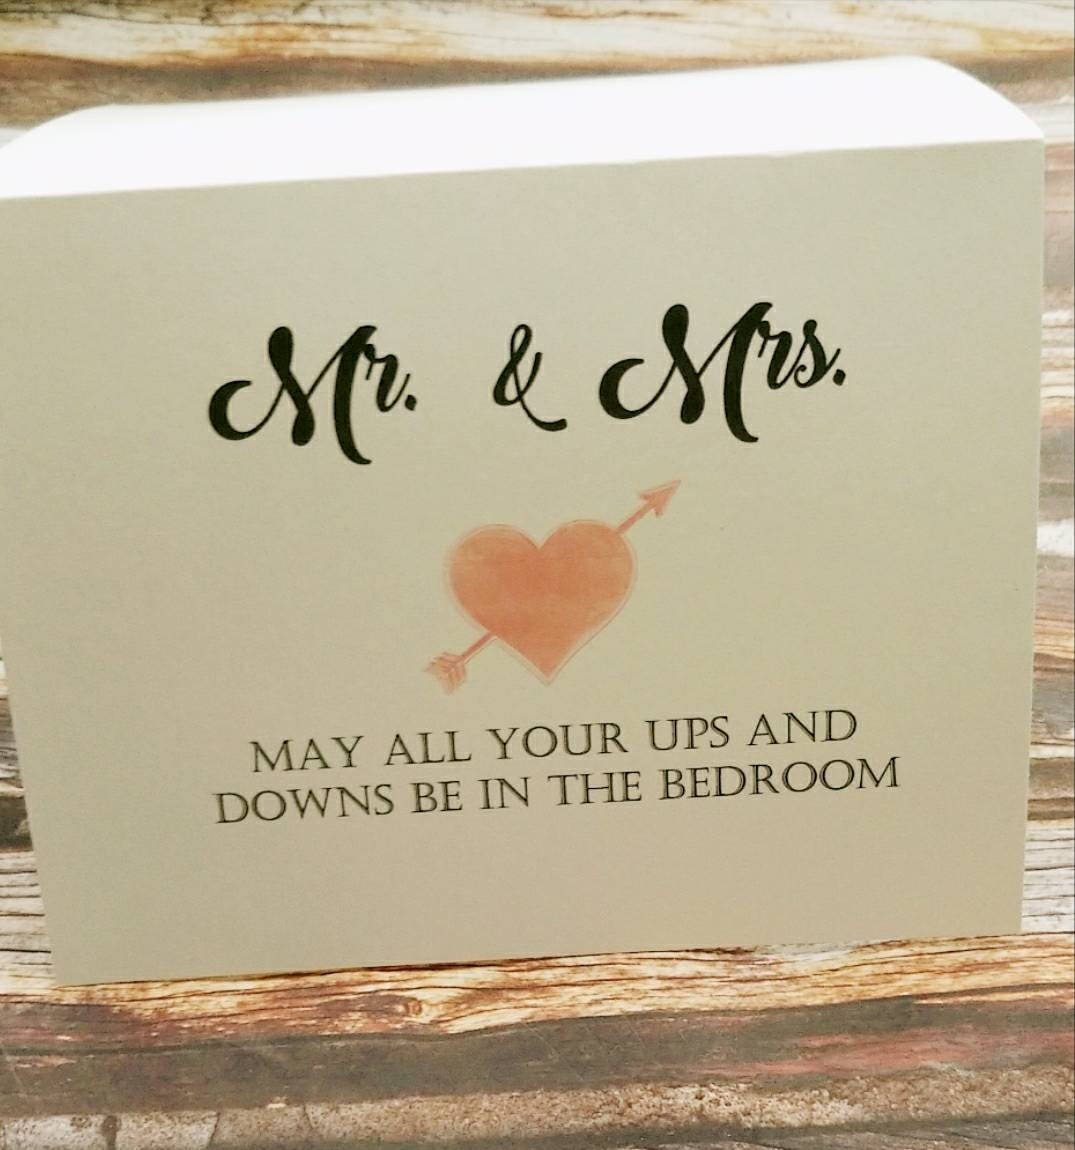 Funny wedding cards funny wedding card funny greeting cards zoom kristyandbryce Image collections